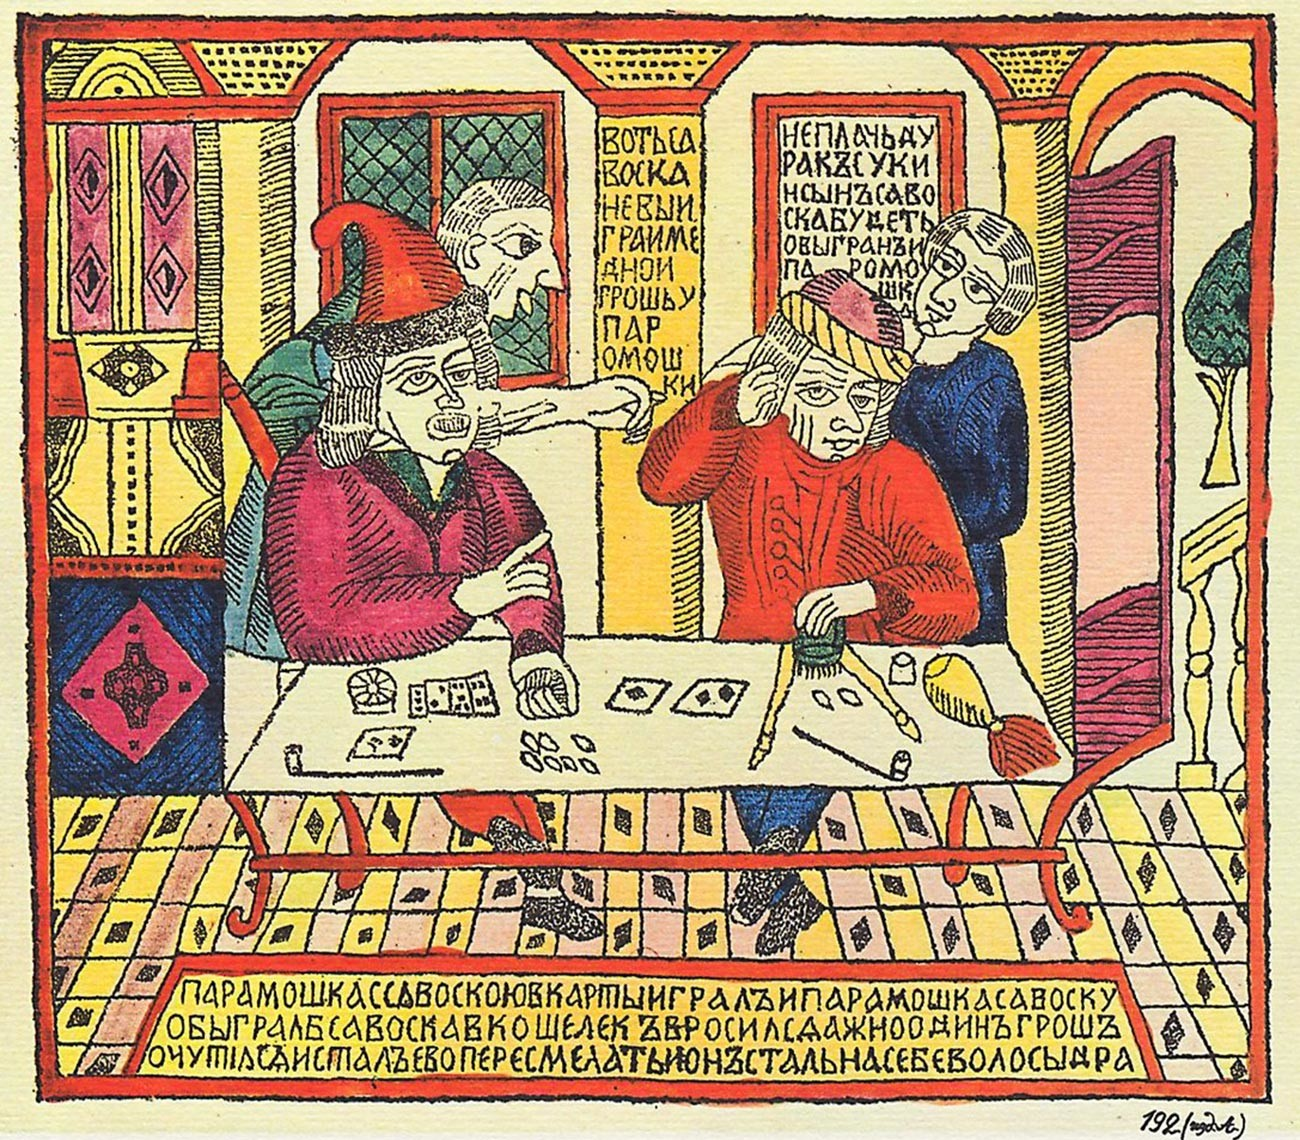 """Lubok 'Savoska and Paramoshka', 18th century. The caption says: """"Paramoshka was playing cards with Savoska and Paramoshka won. Savoska looked into his purse and found a single kopeck there. [Paramoshka] began laughing at him, and he began to tear his hair out."""""""